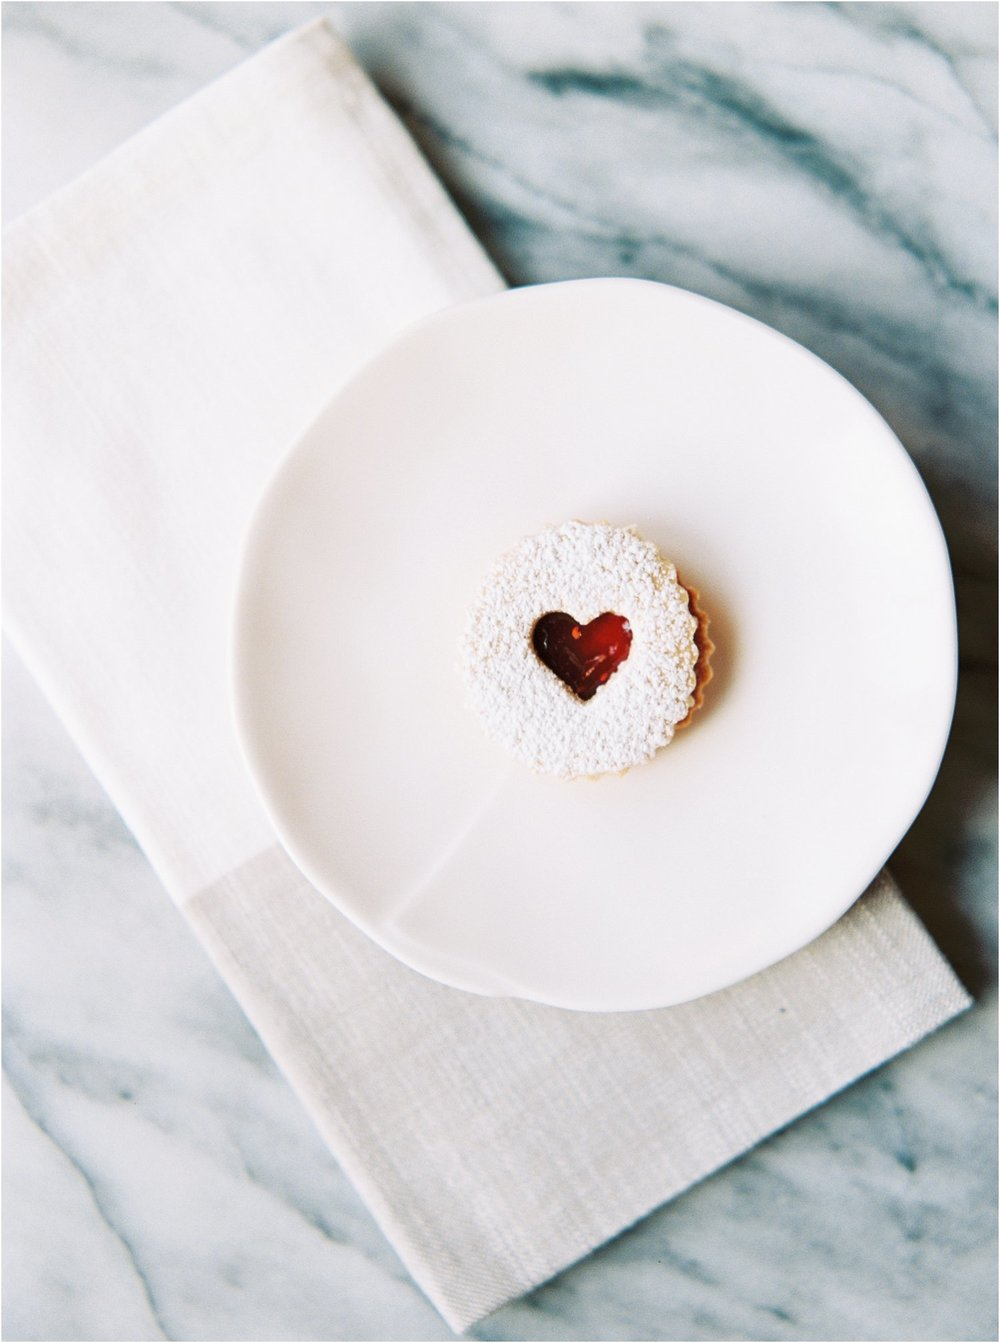 Gluten Free Linzer Cookies with Strawberry Jam | Feast & Dwell